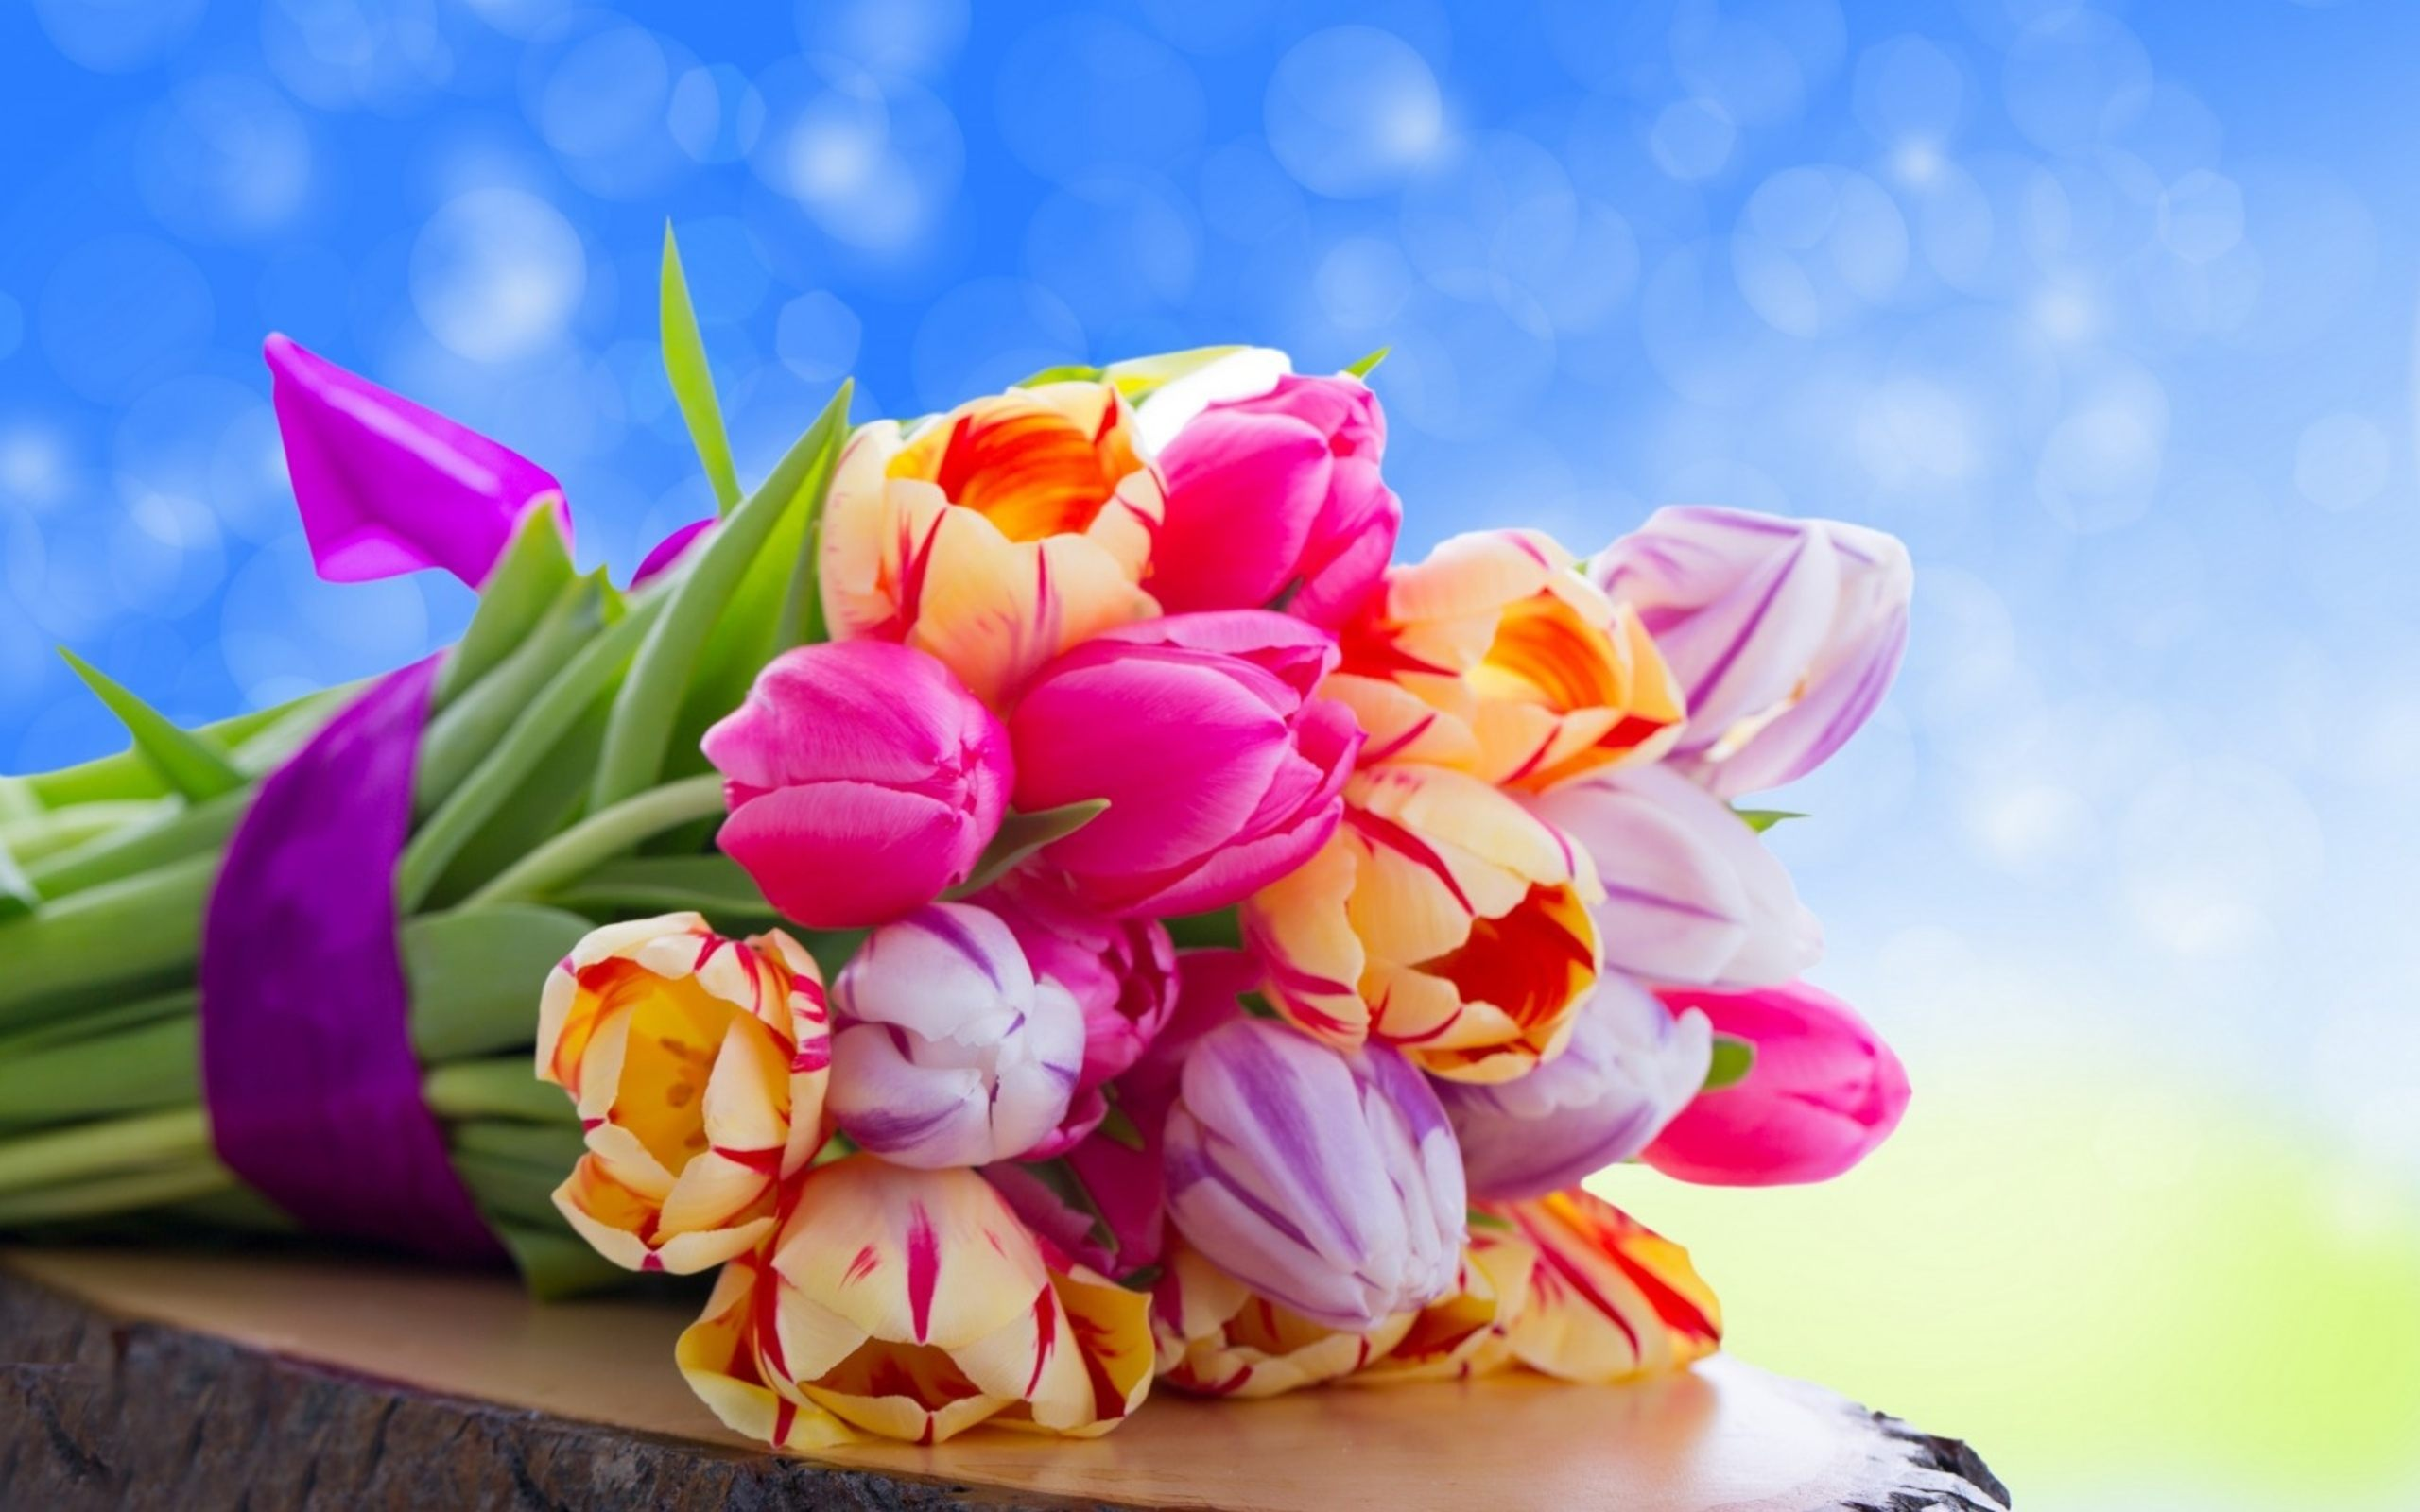 Free pictures of colorful flowers clipground free pictures of colorful flowers izmirmasajfo